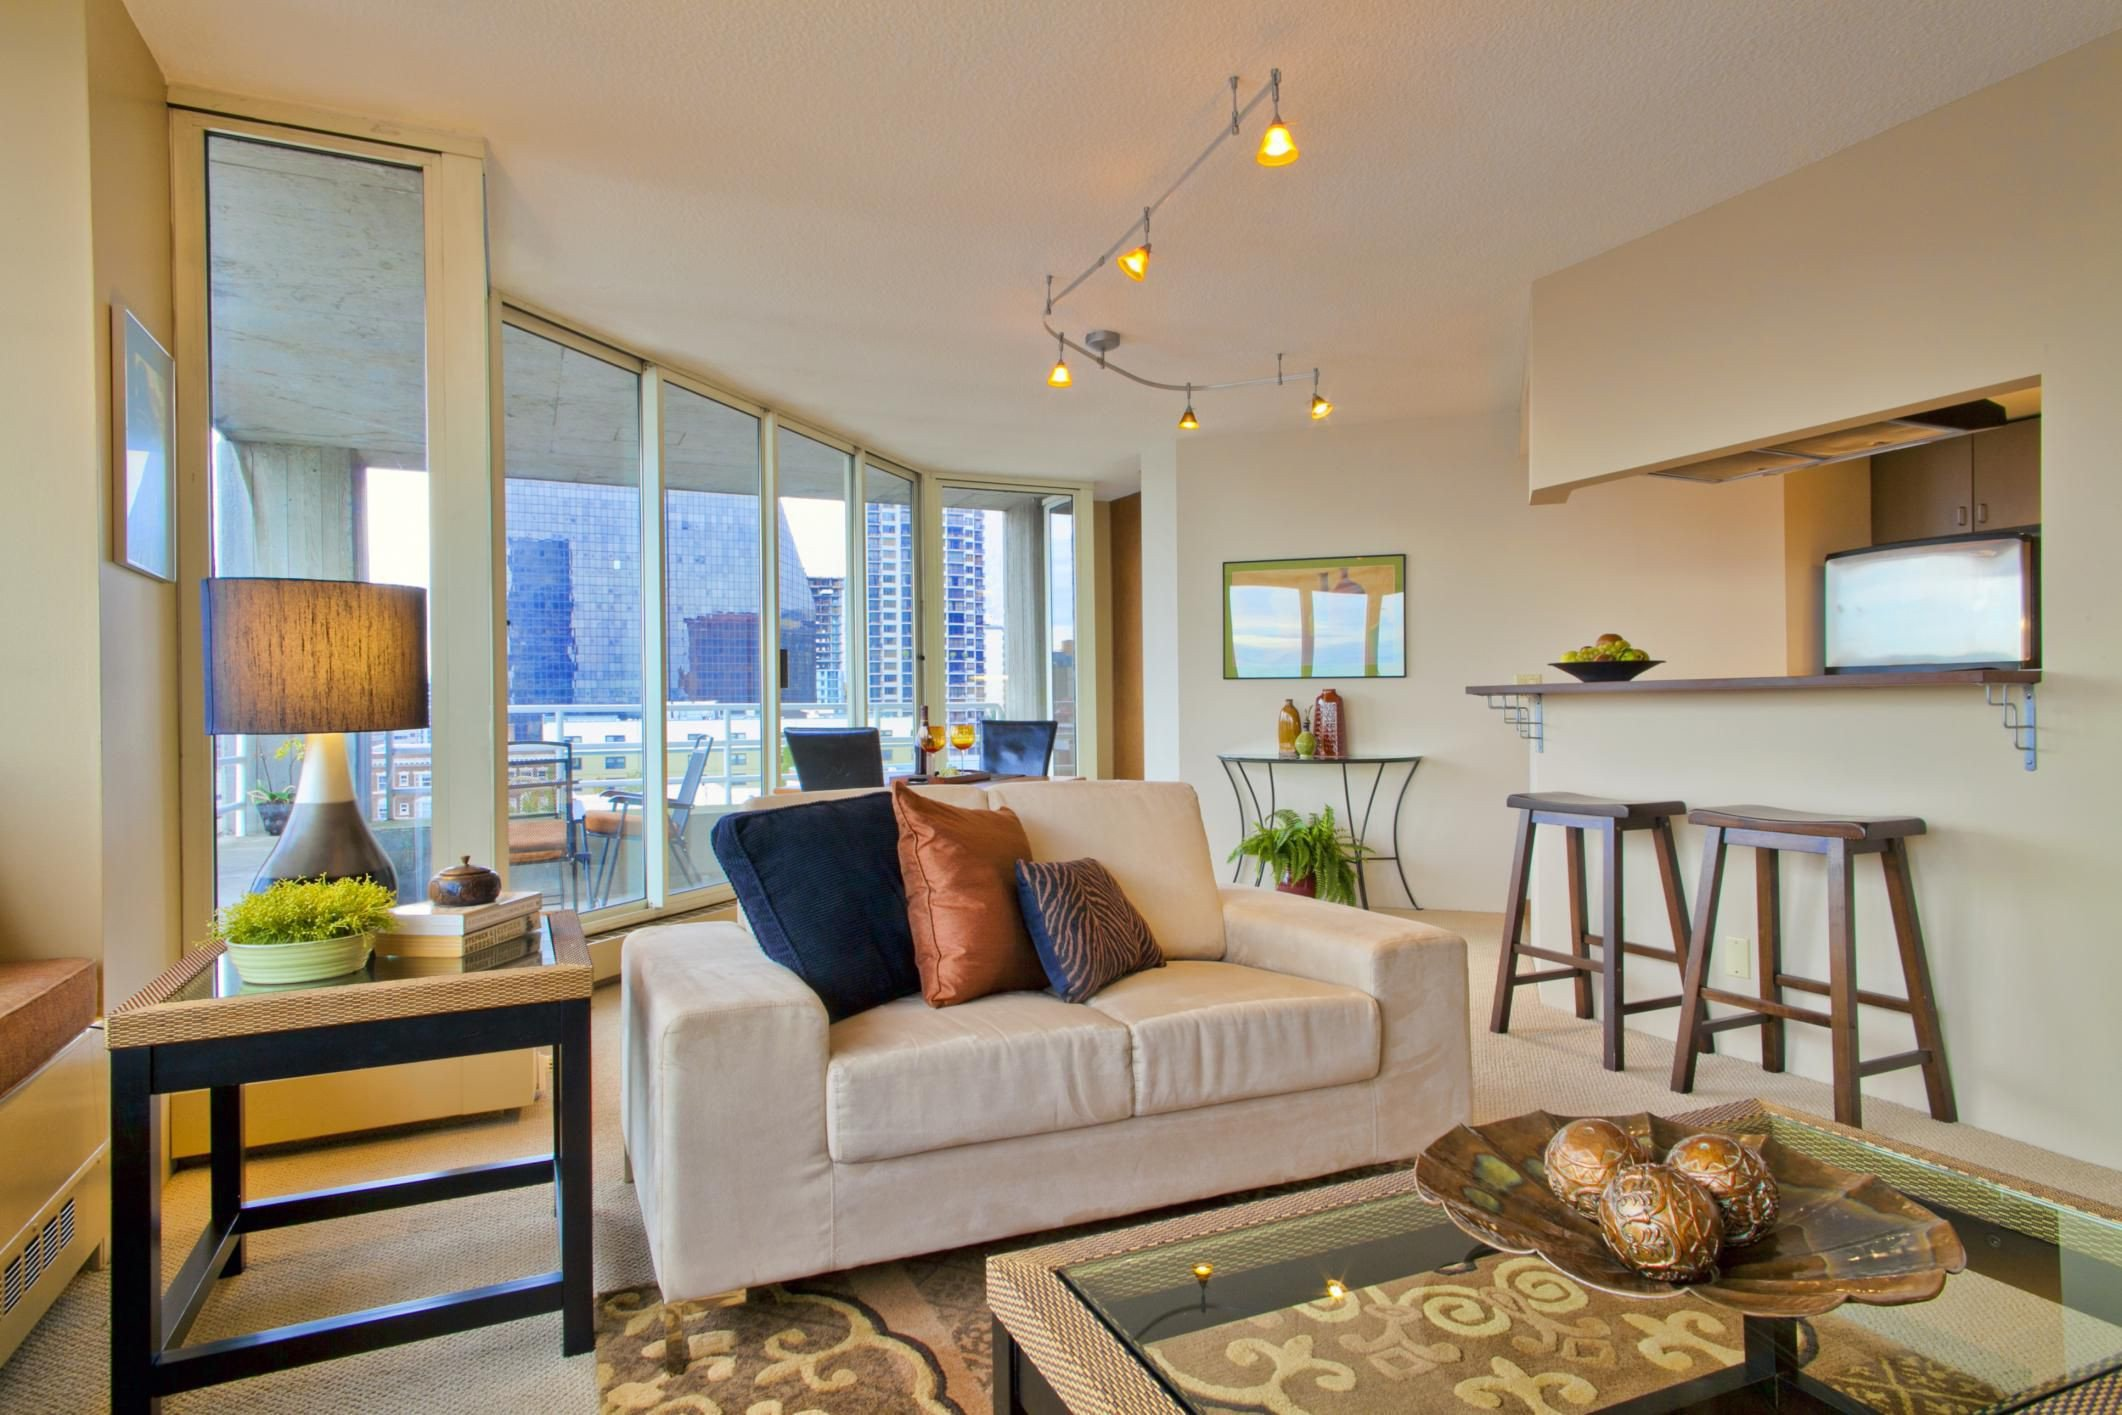 Small Living Room Interior Design How to Decorate A Small Living Room